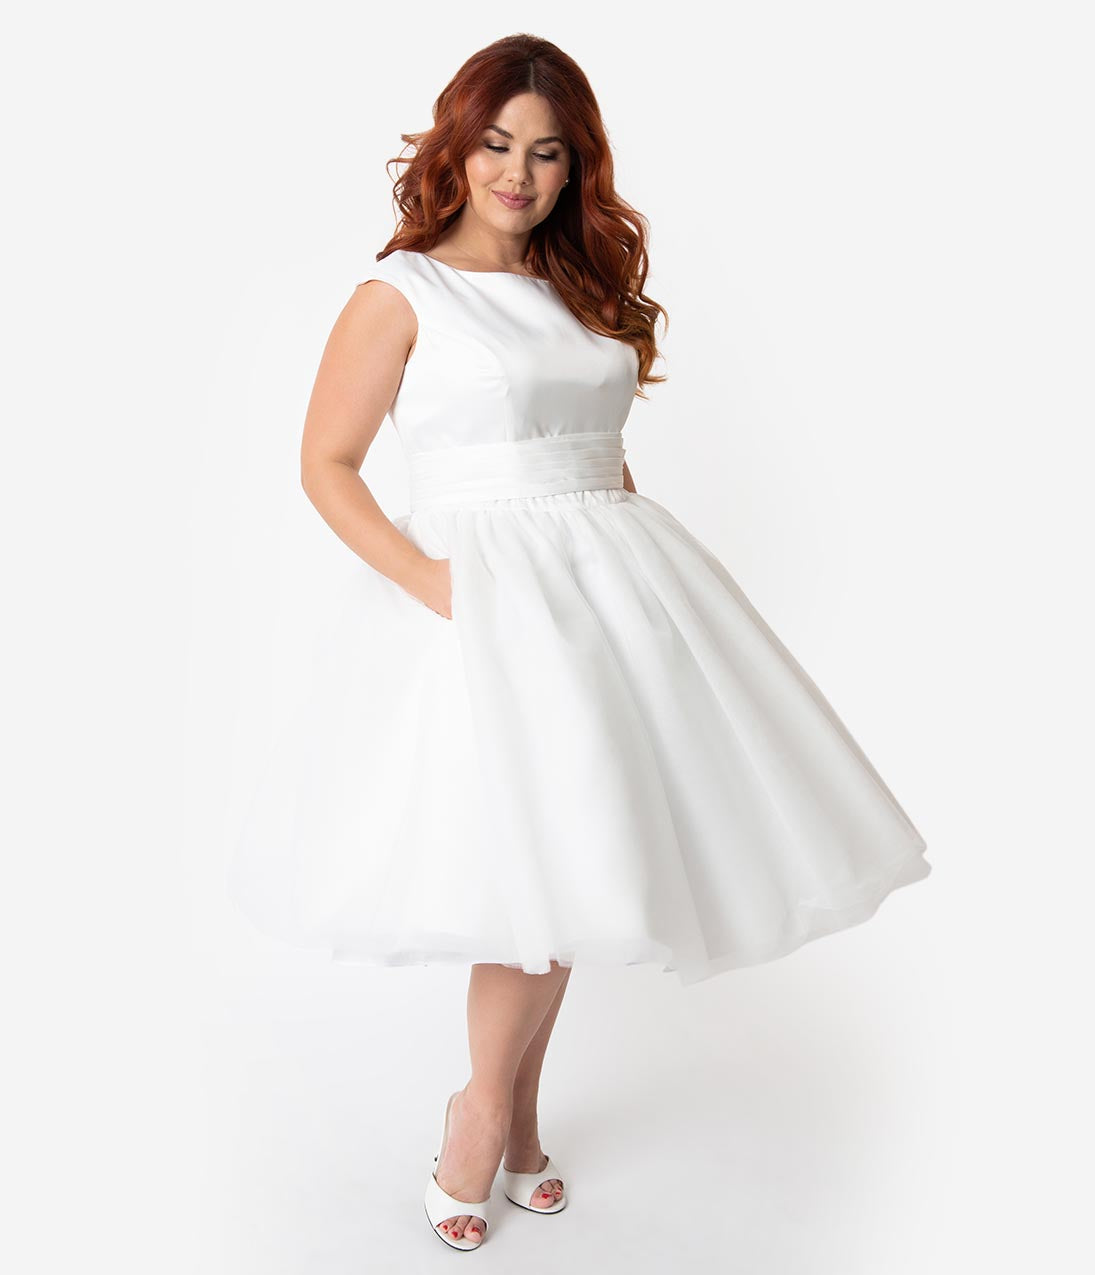 1950 Style Clothing- A Shopping Guide Unique Vintage X Dolly Couture Plus Size White Satin  Mesh Tea Length Holly Wedding Dress $190.00 AT vintagedancer.com